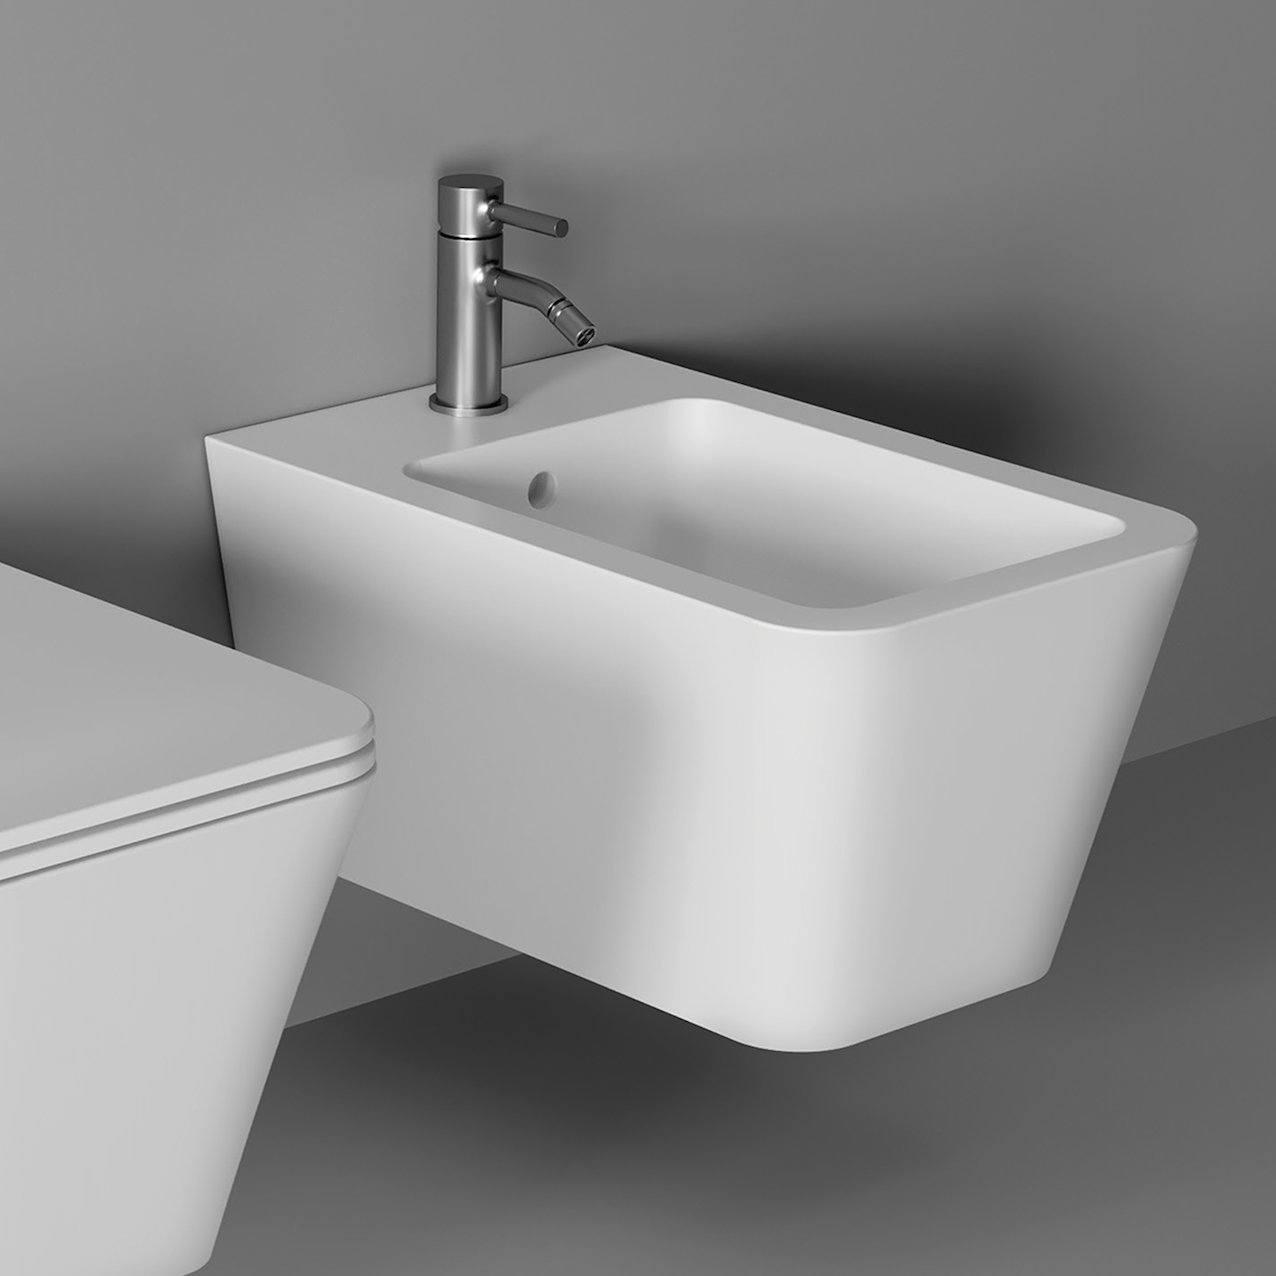 Bidet Hide Square wall hung